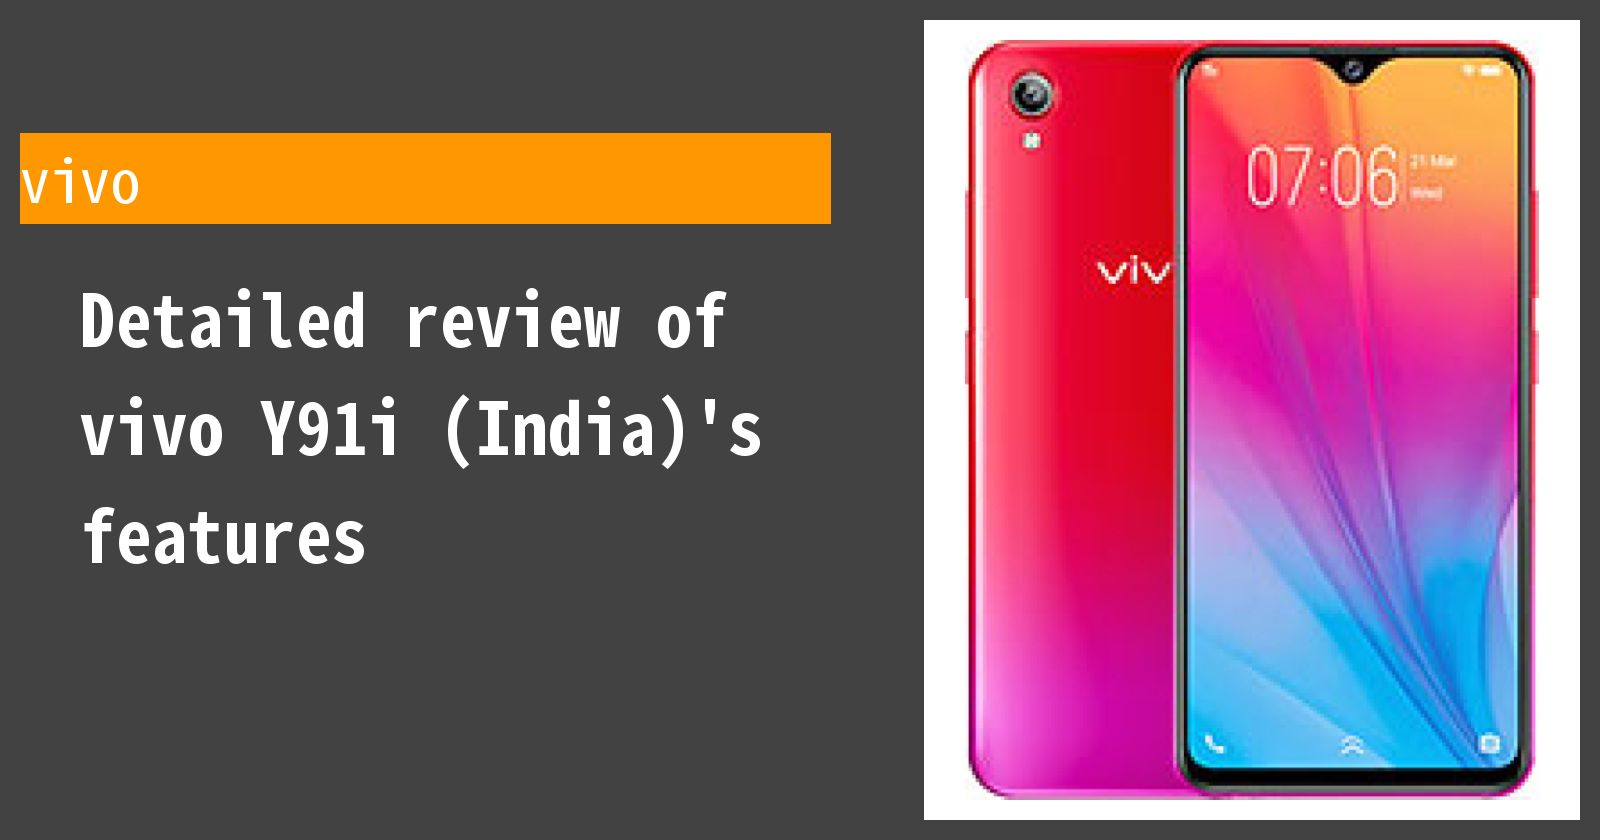 Detailed review of vivo Y91i (India)'s features